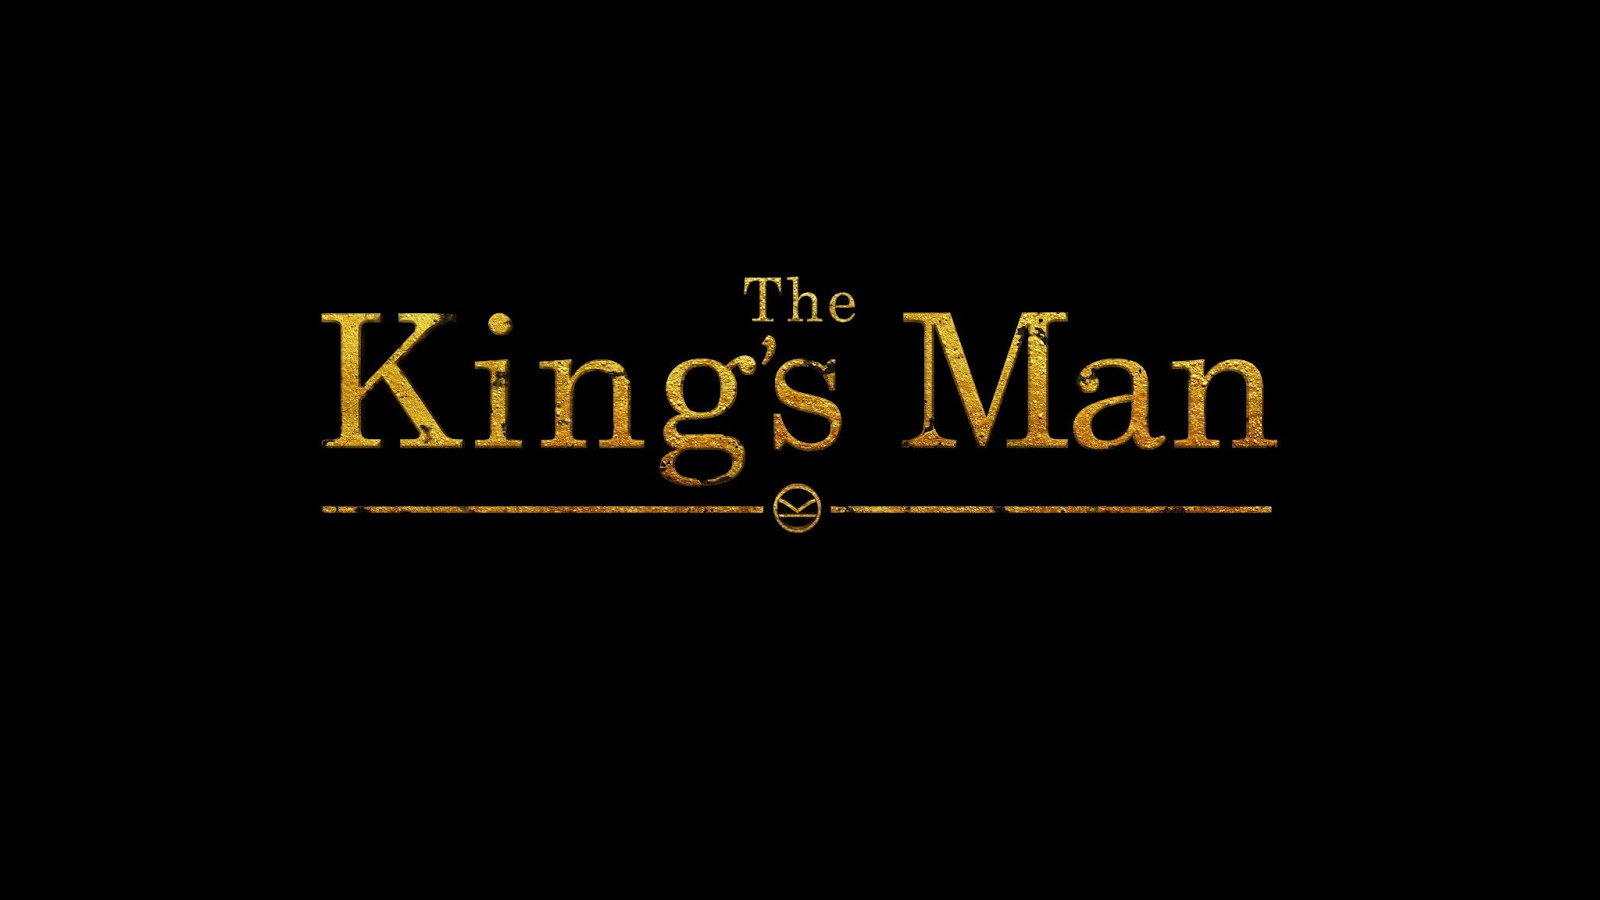 The Kings Man: The Beginning